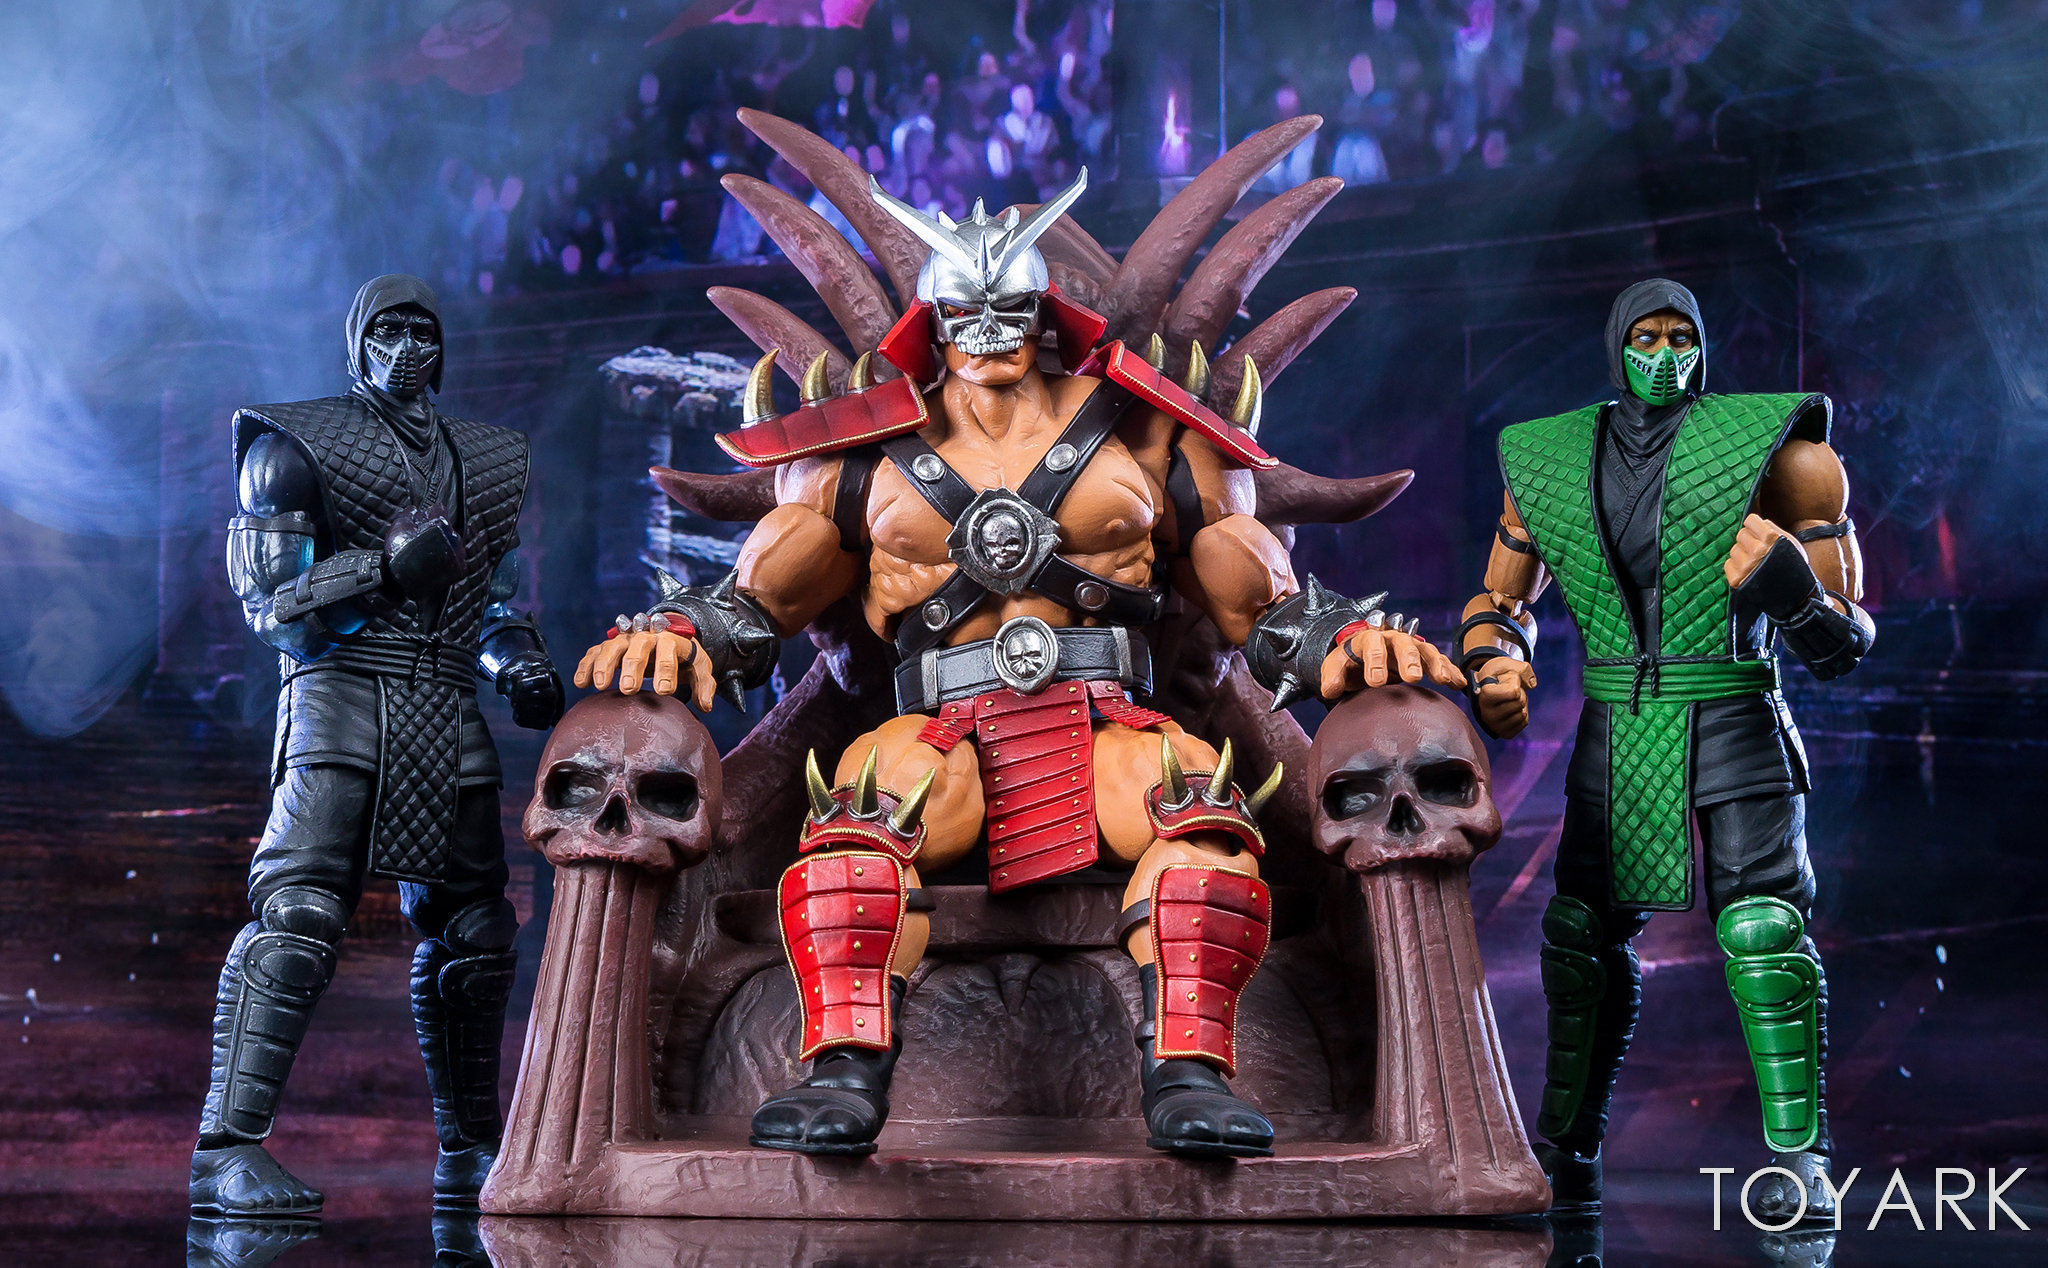 https://news.toyark.com/wp-content/uploads/sites/4/2018/06/Storm-Mortal-Kombat-Shao-Kahn-Figure-032.jpg